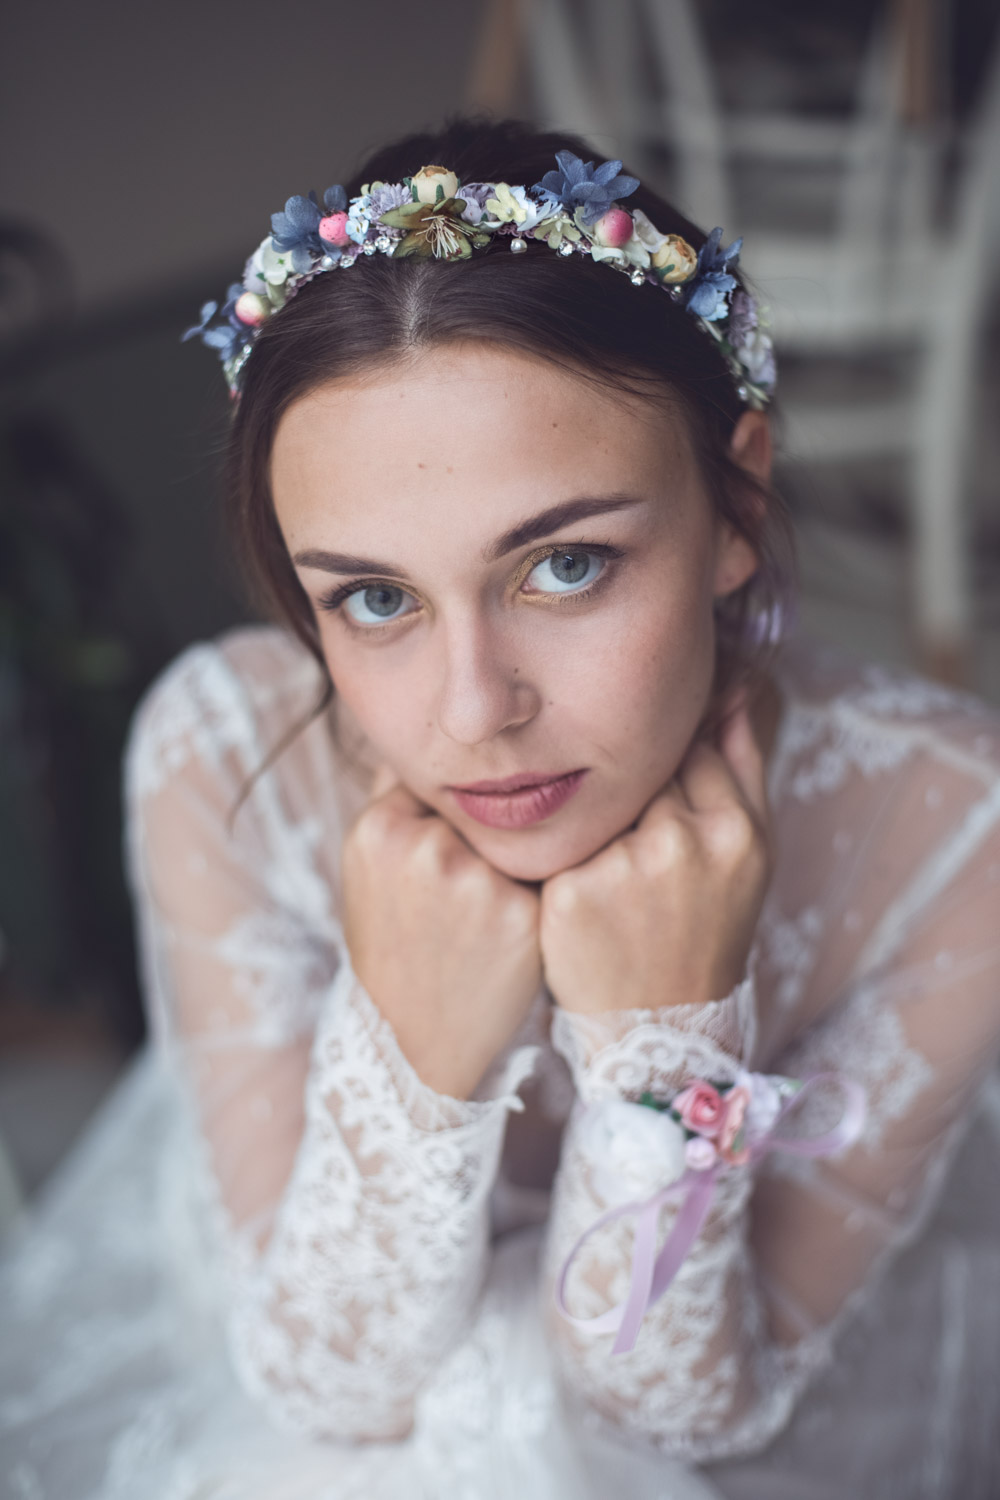 We-Are-Flowergirls_Wedding-Shooting_Headpiece_Isla_2.jpg